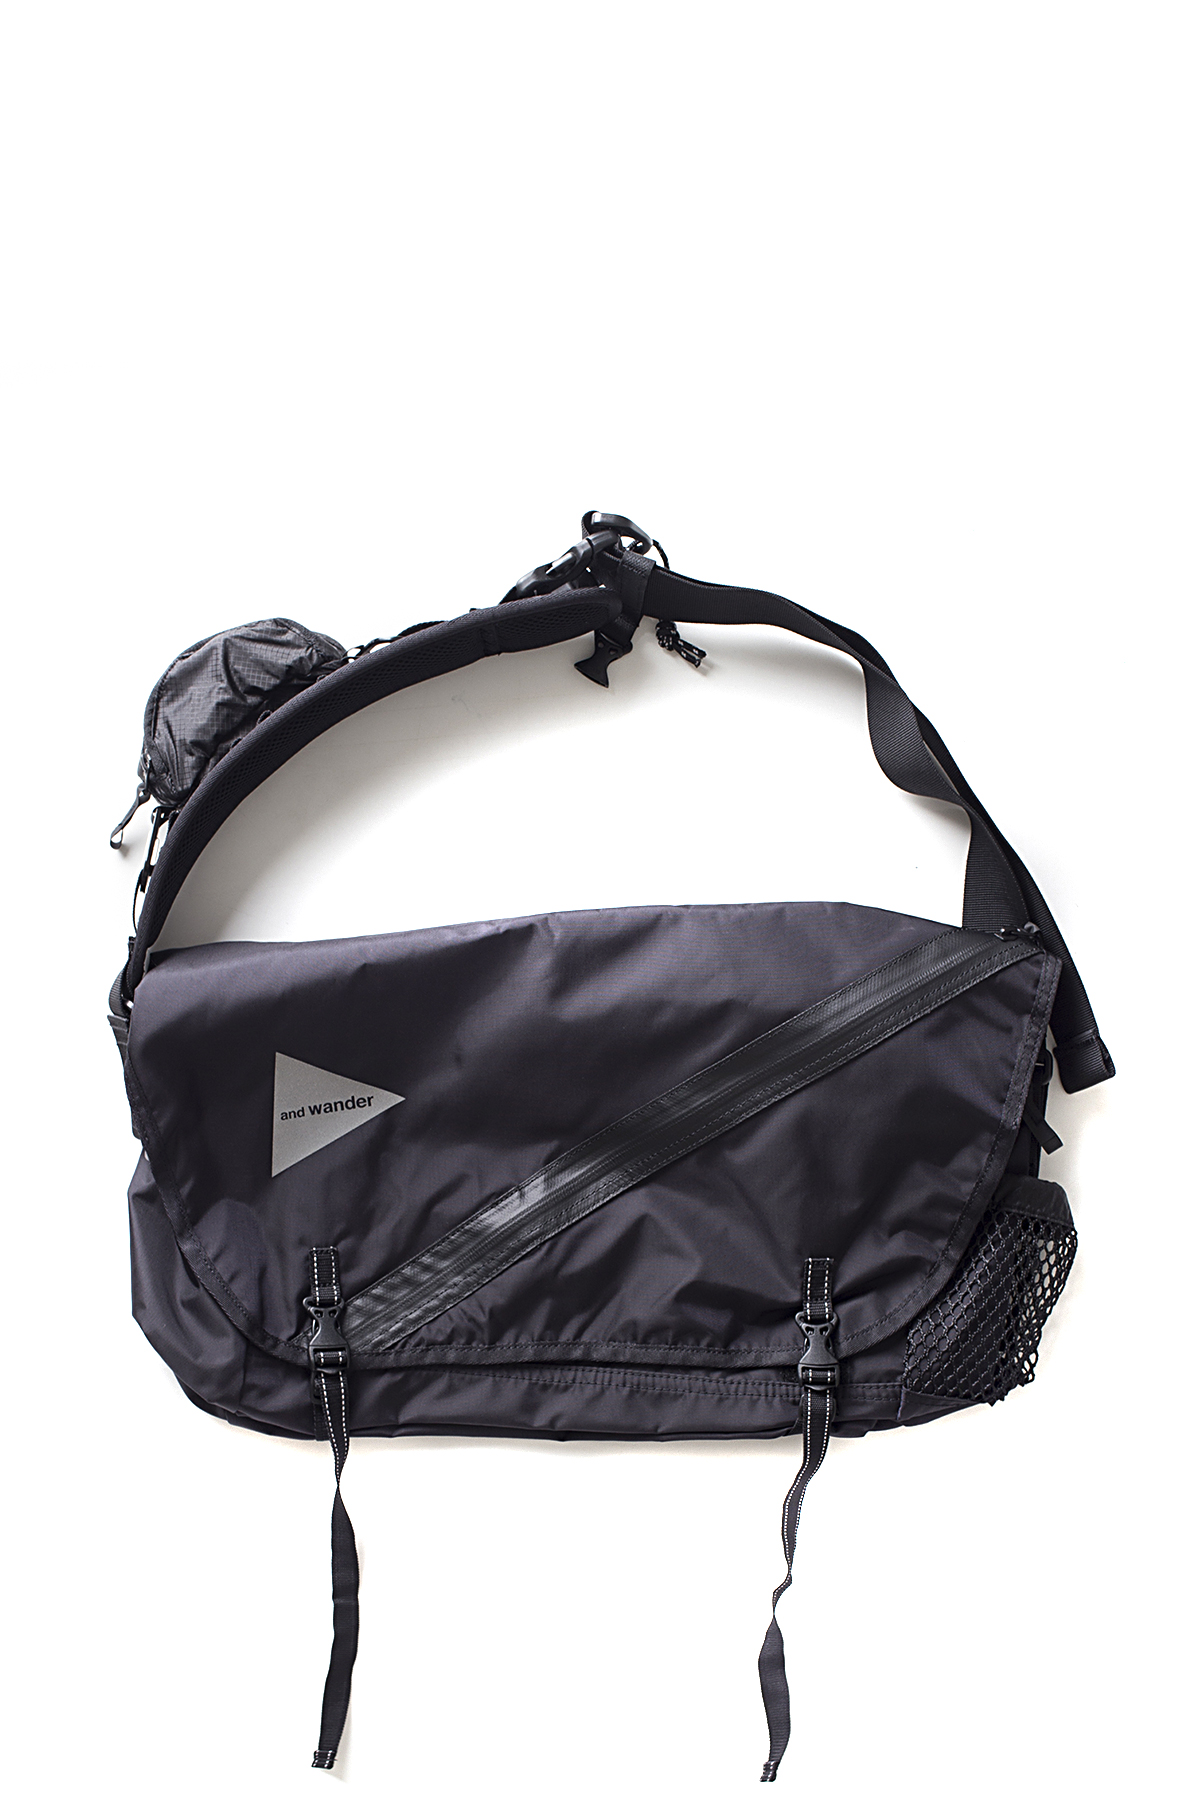 and wander : 20L Messenger Bag (Black)